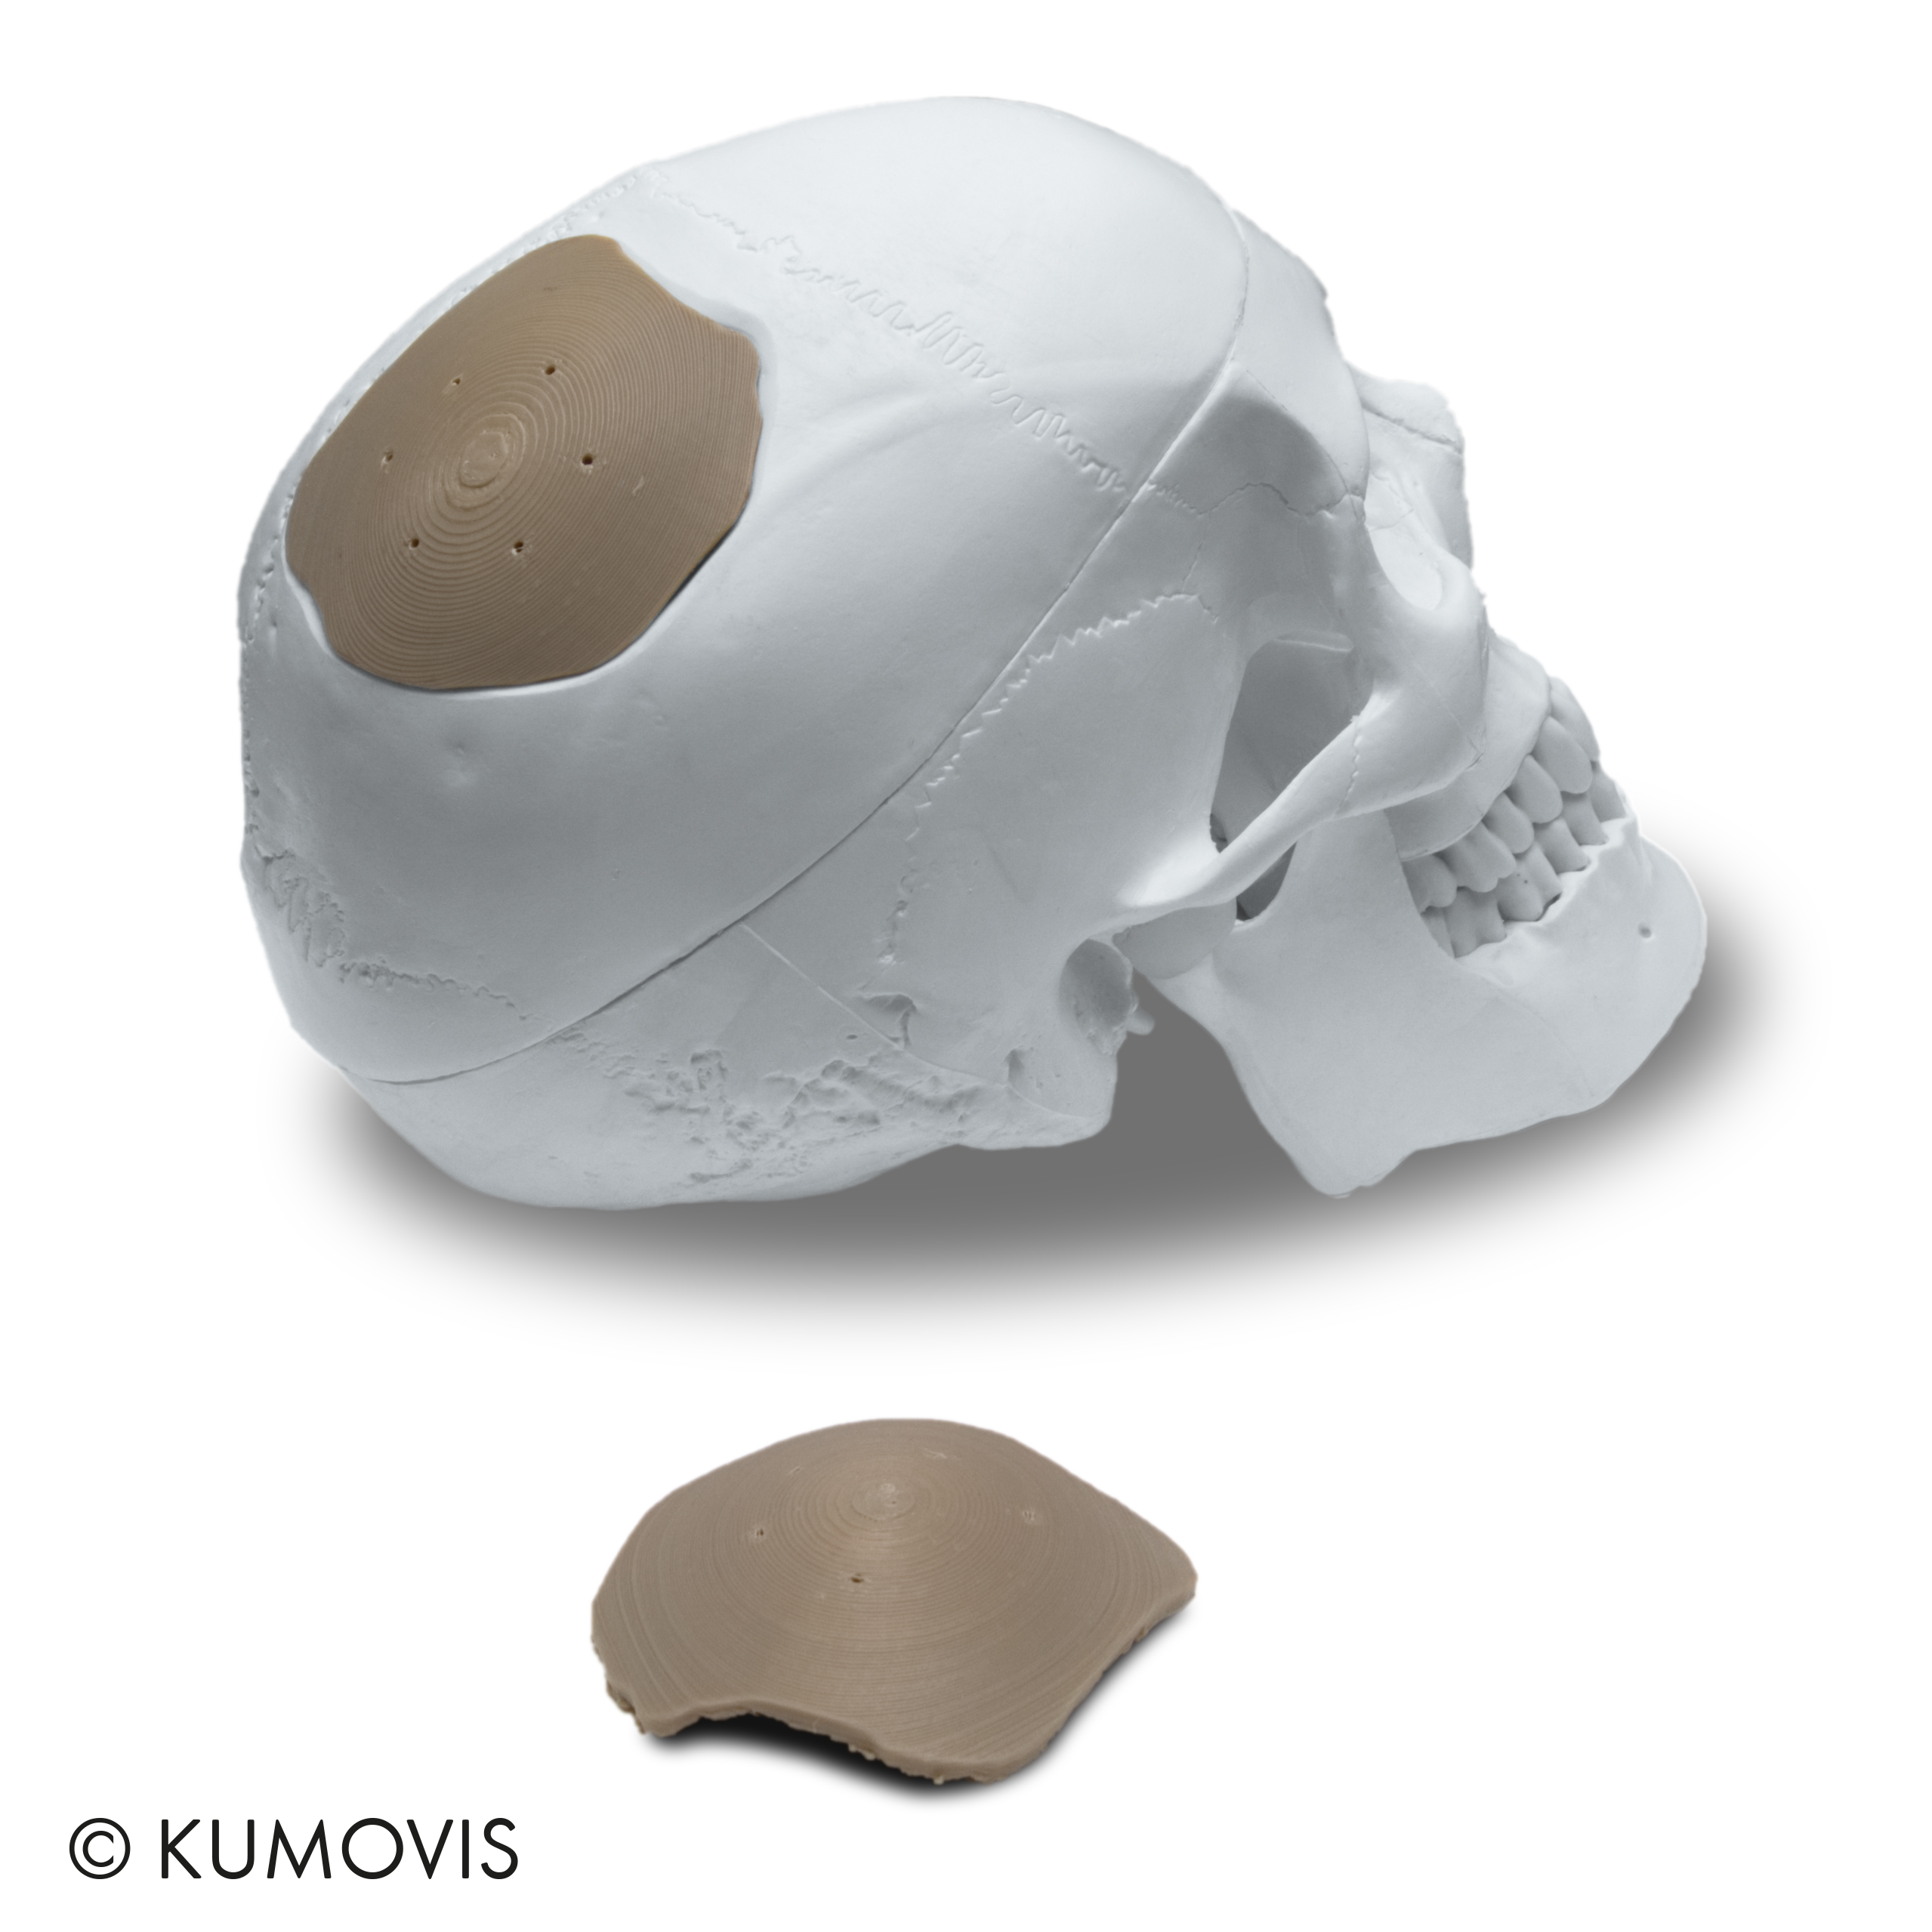 A cranial implant produced on the Kumovis R1 3D printer. Photo via Kumovis.